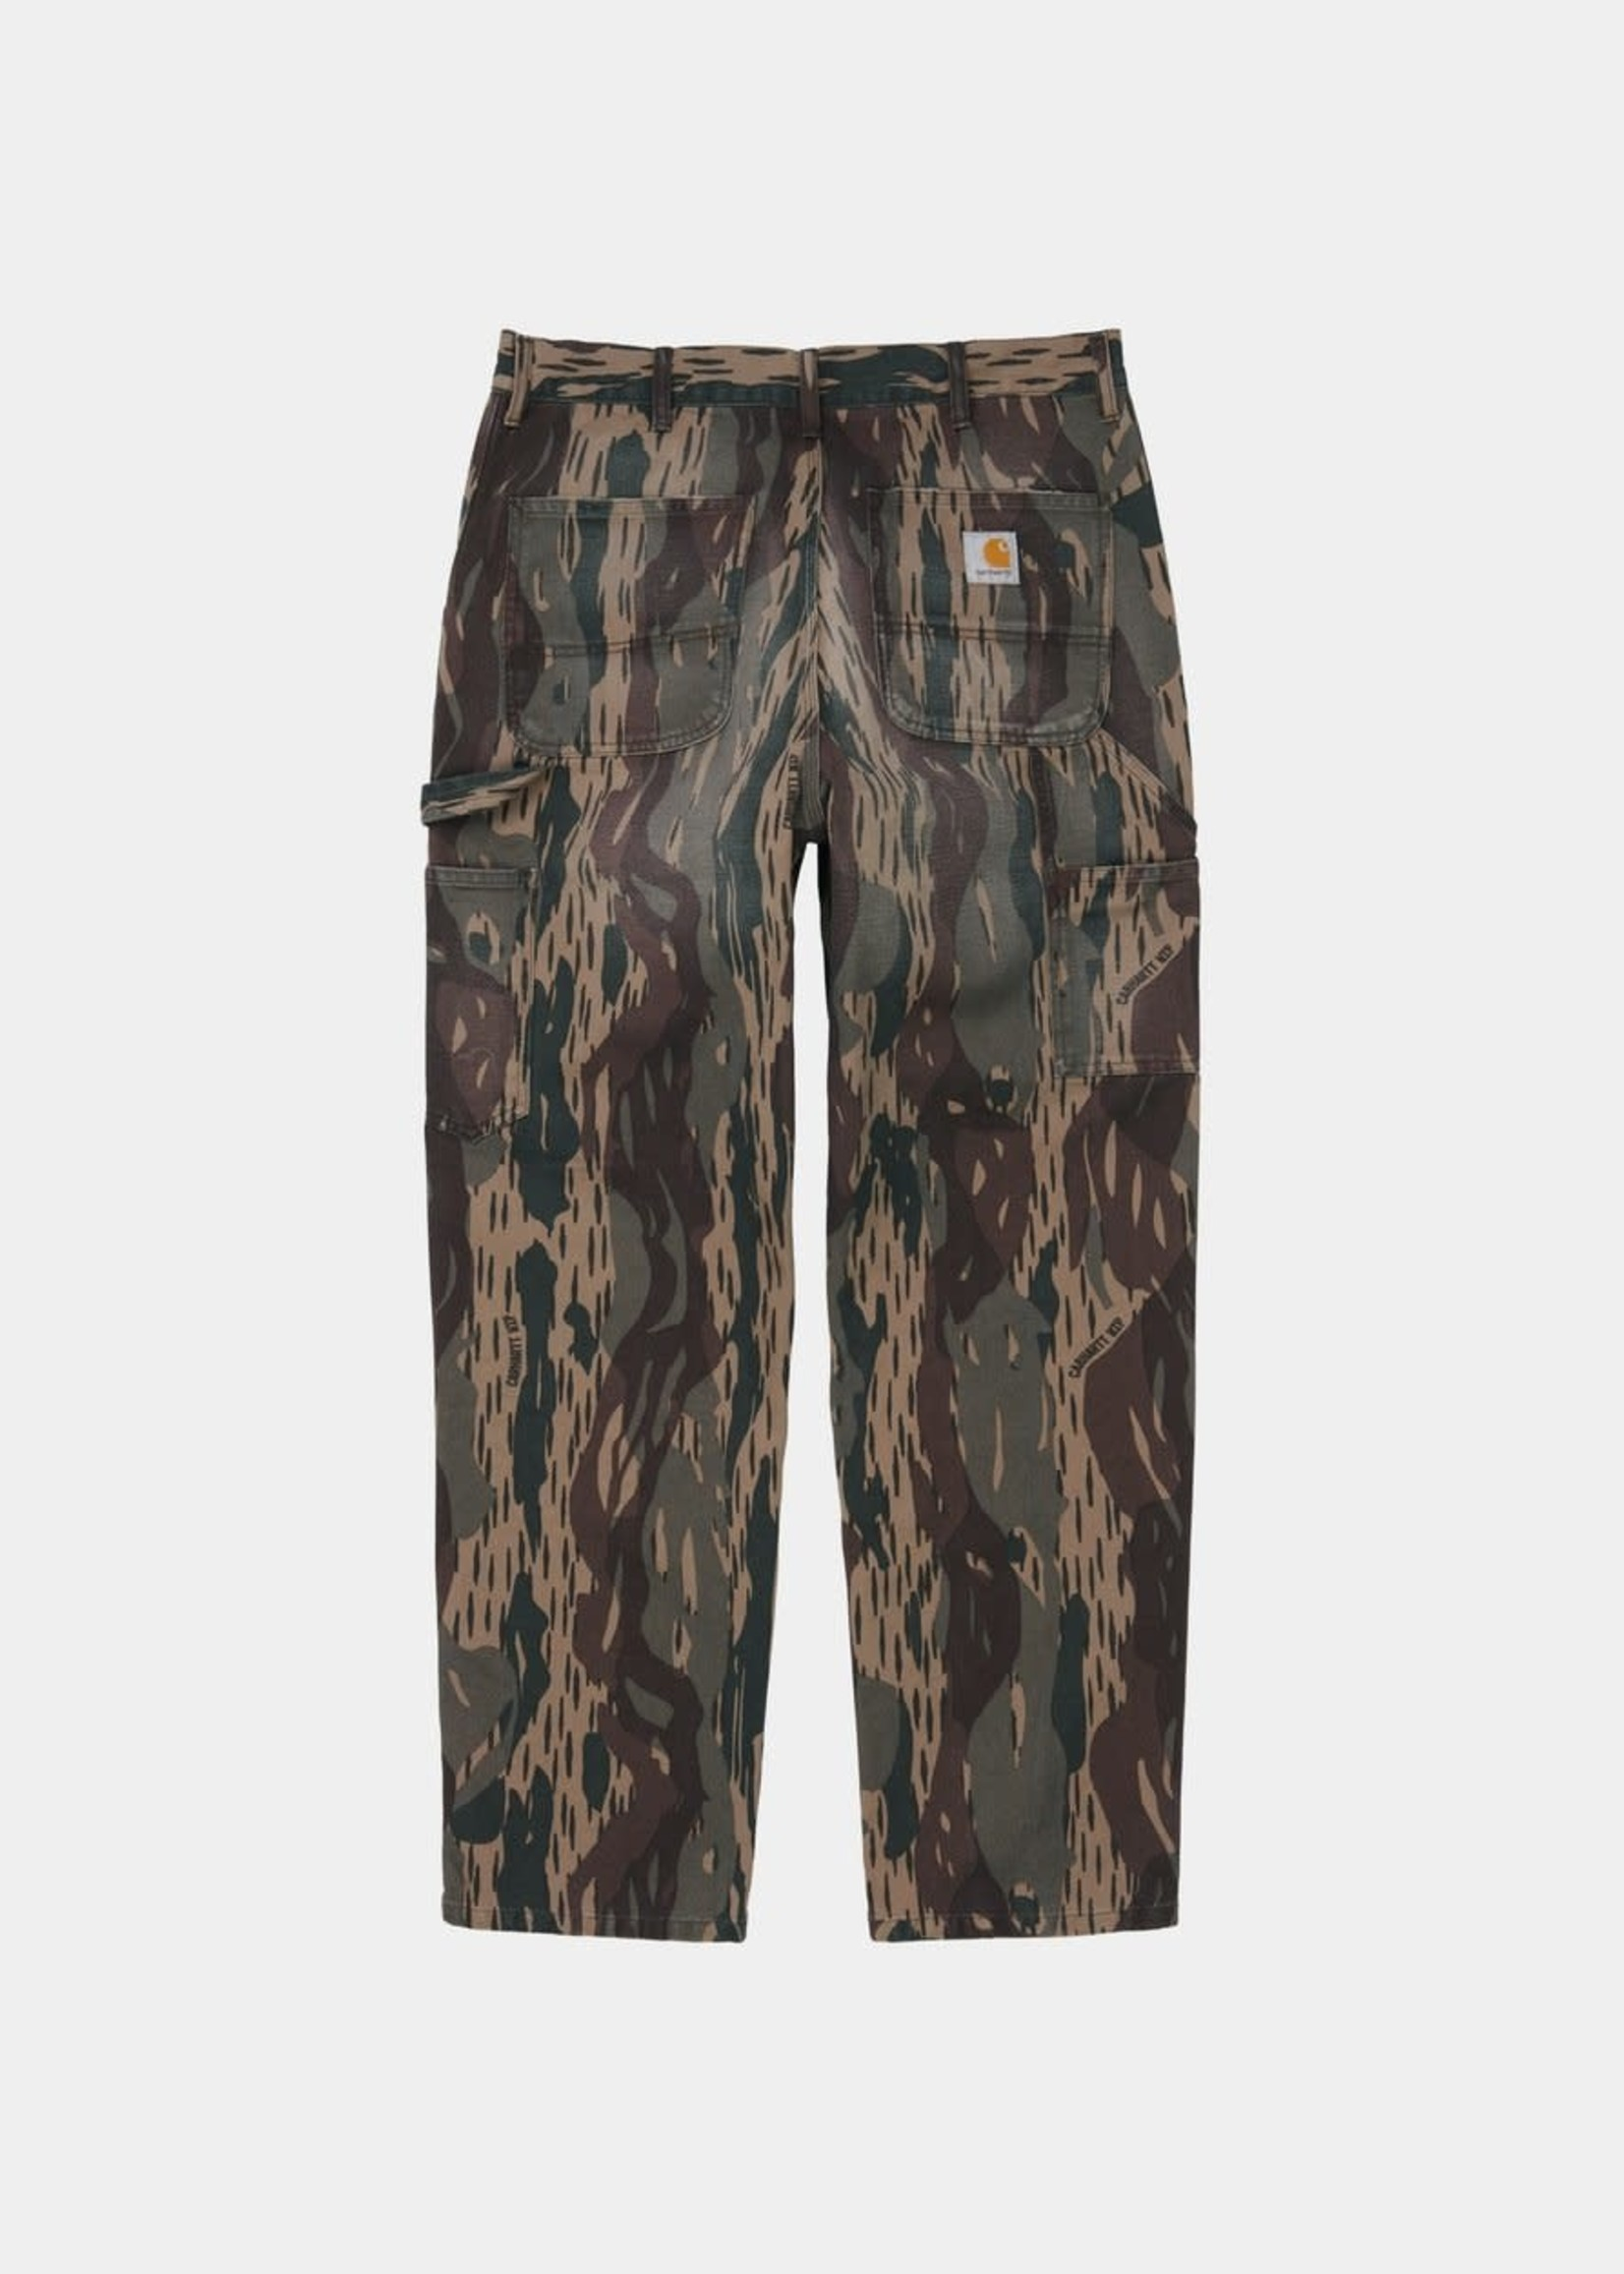 Carhartt Work In Progress Double Knee Pant in Aged Canvas Camo